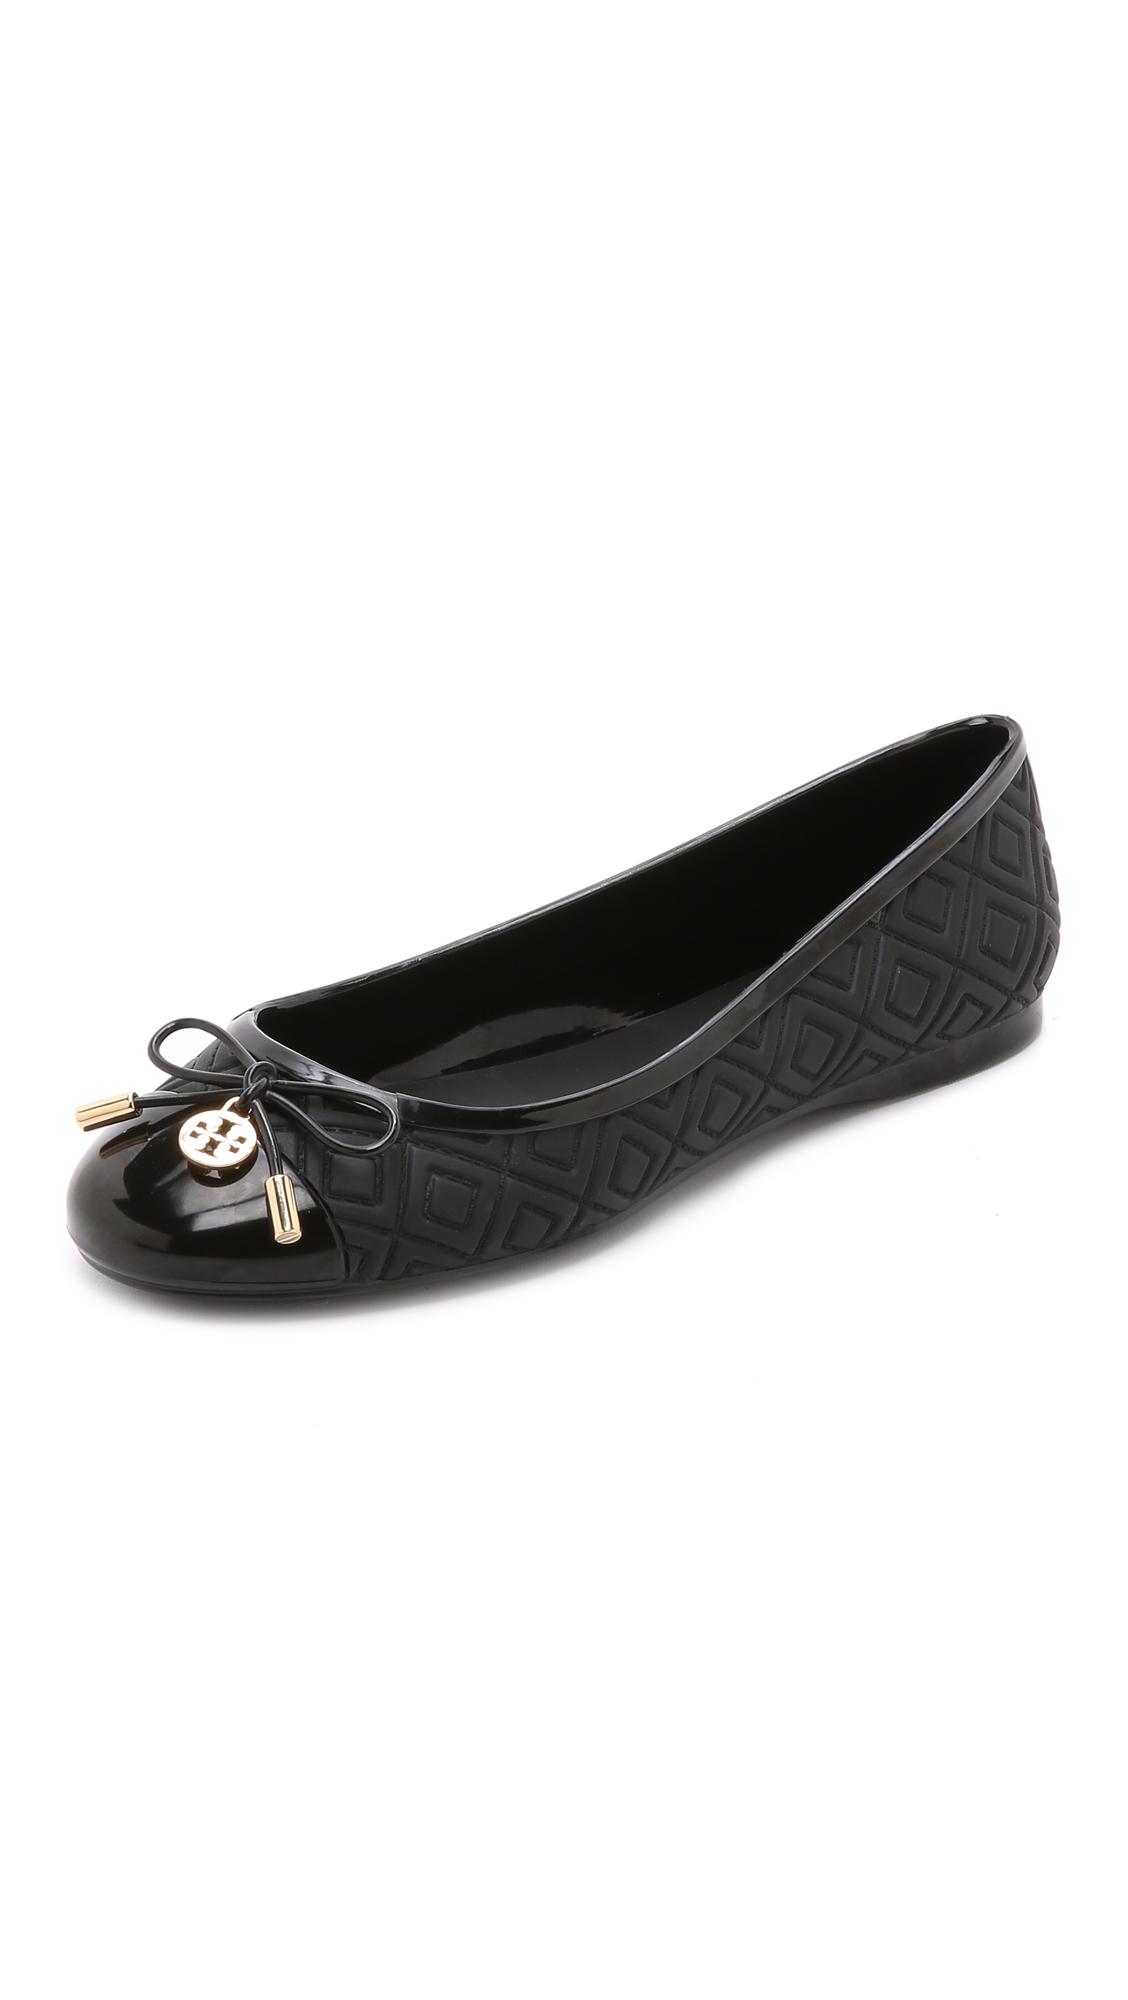 e4f86621bc2 Tory Burch Blossom Jelly Ballet Flats In Black